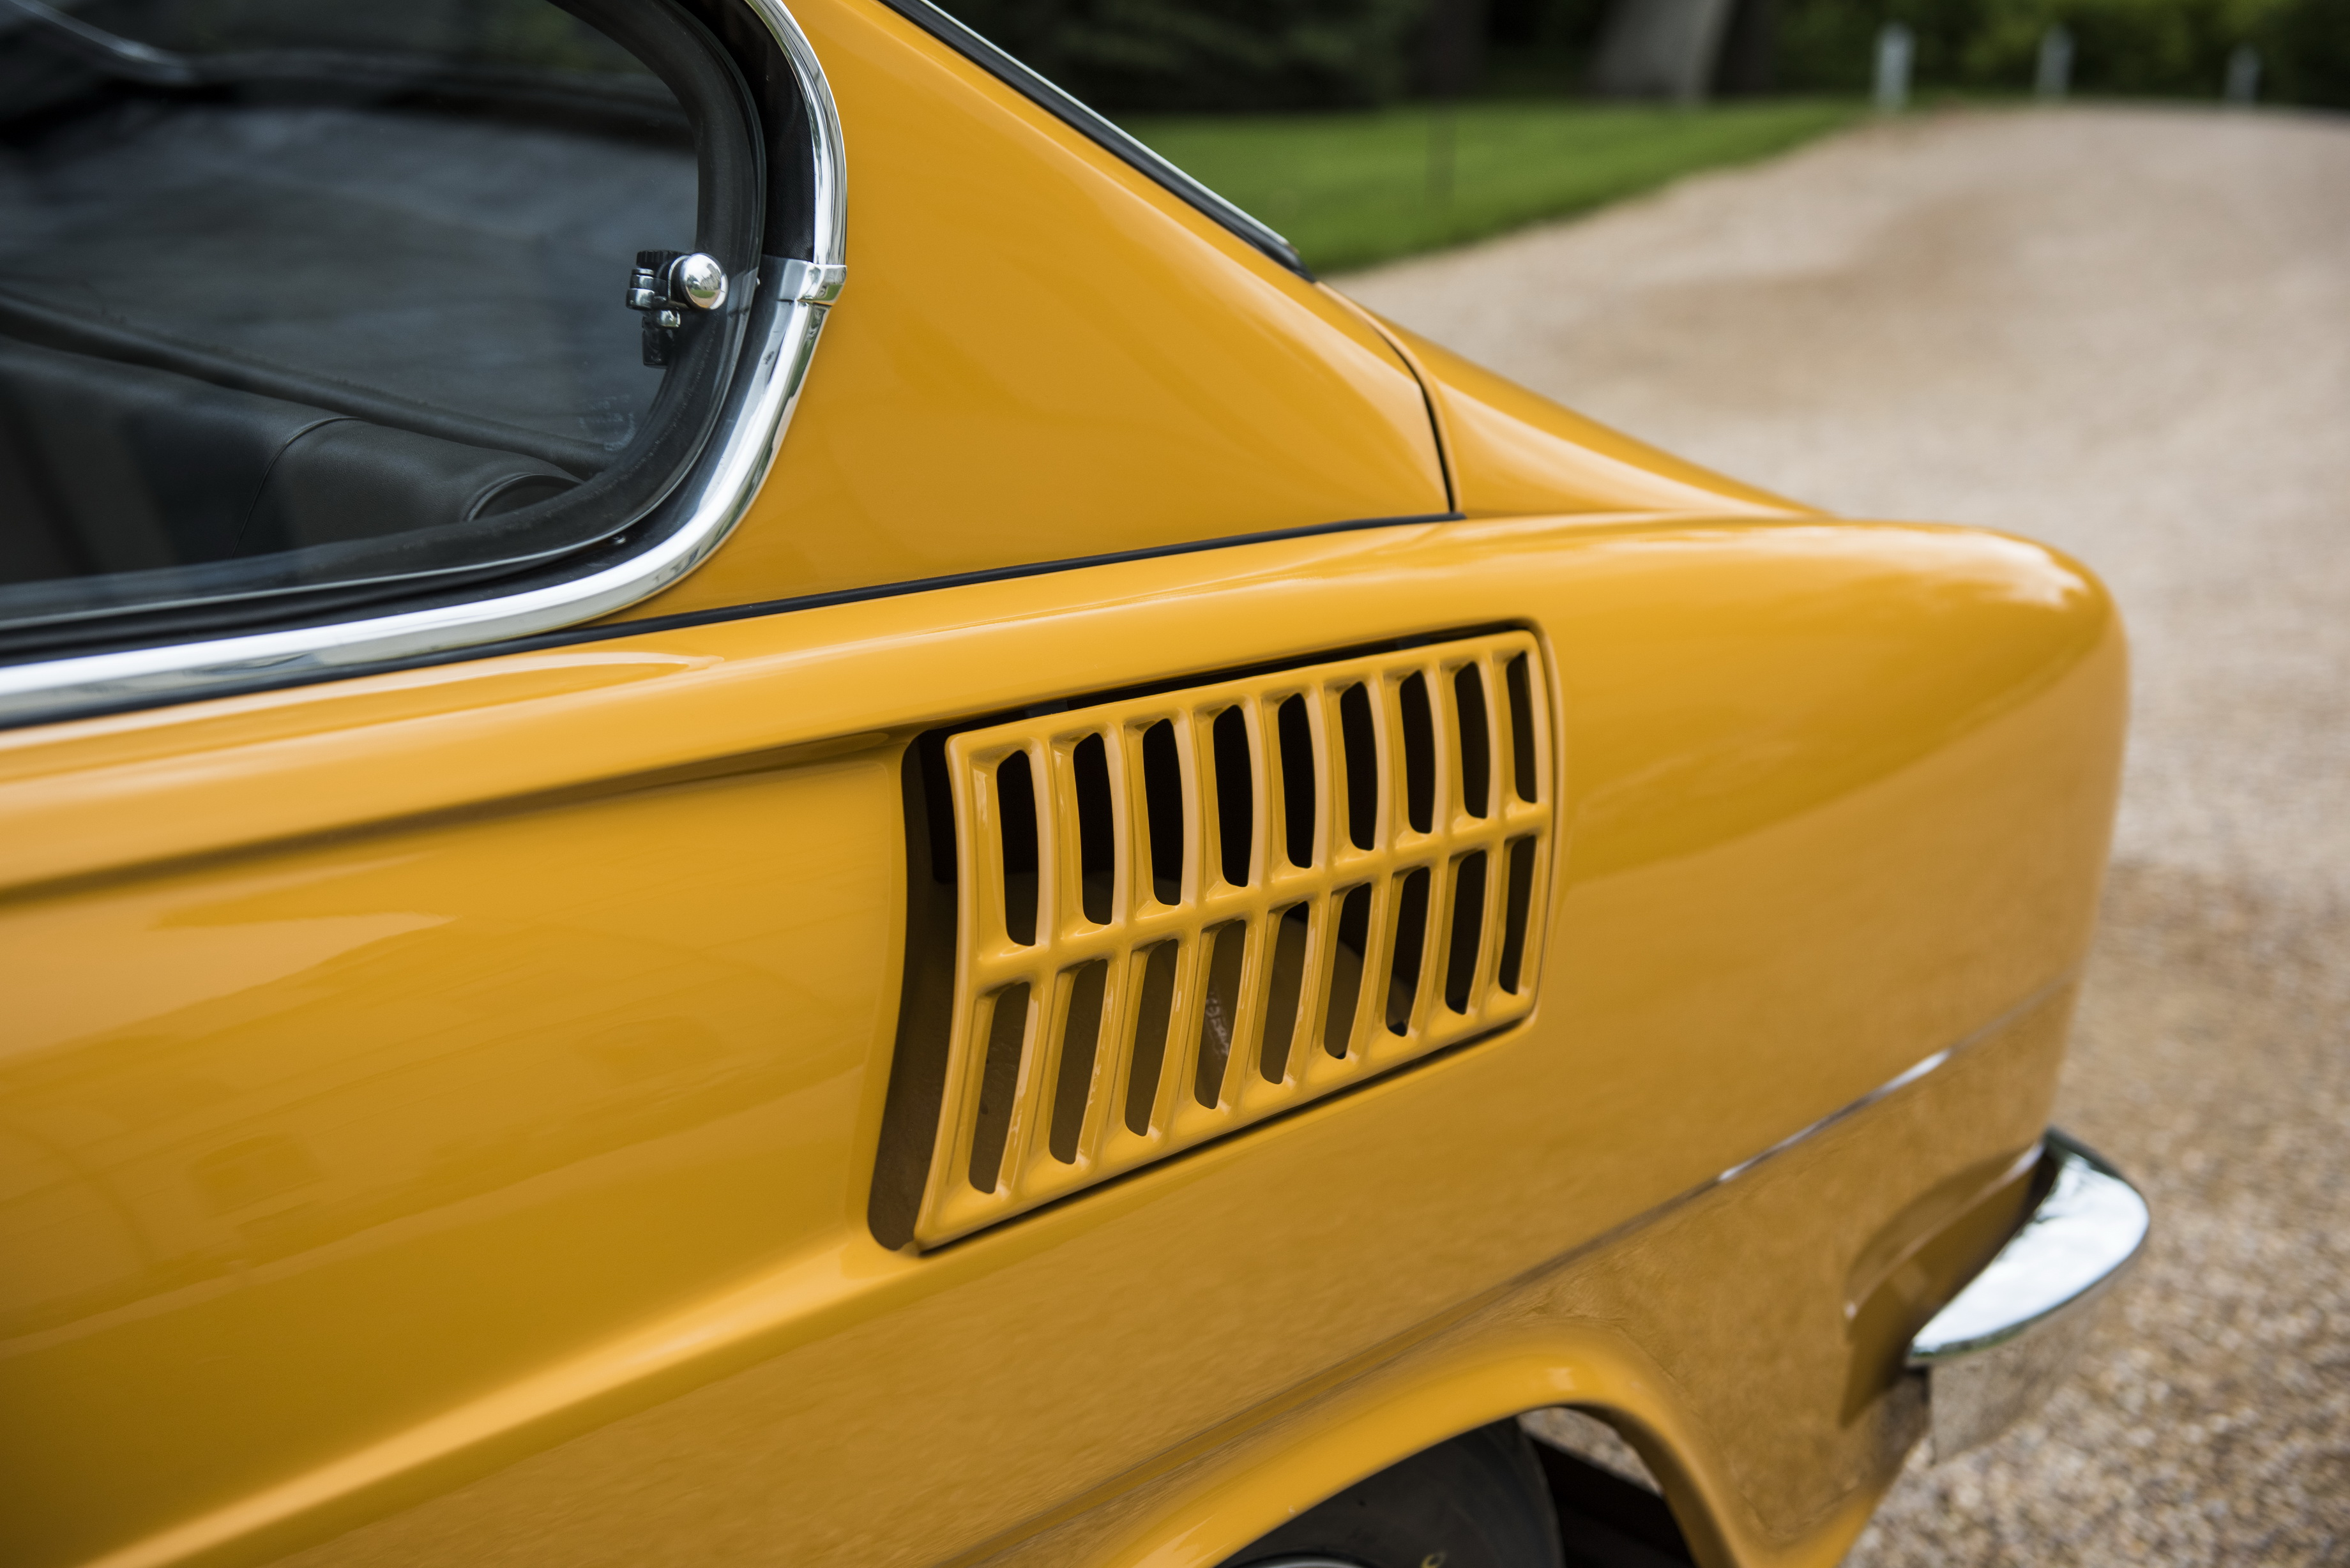 50 years of the 110 R: Half a century ago, SKODA presented its legendary sports coupé - Image 5